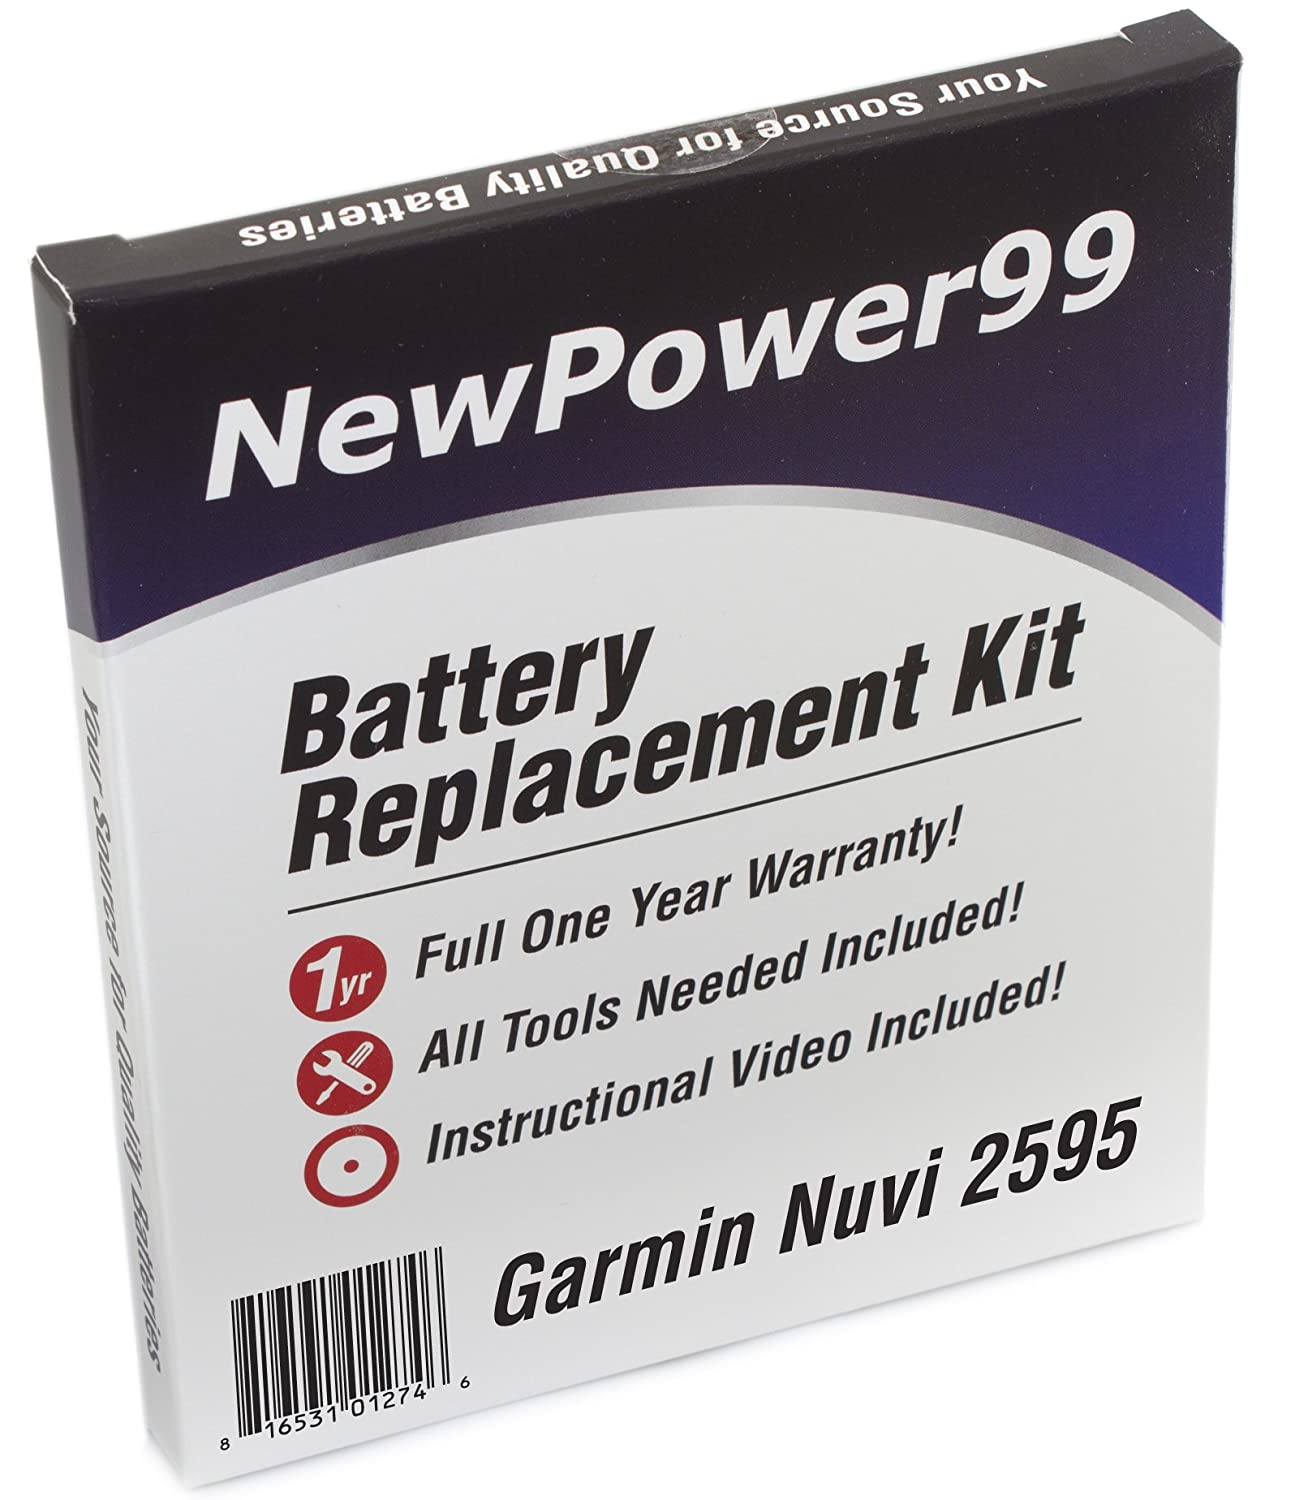 Amazon.com: Battery Replacement Kit for Garmin Nuvi 2595 with Installation  Video, Tools, and Extended Life Battery.: Cell Phones & Accessories